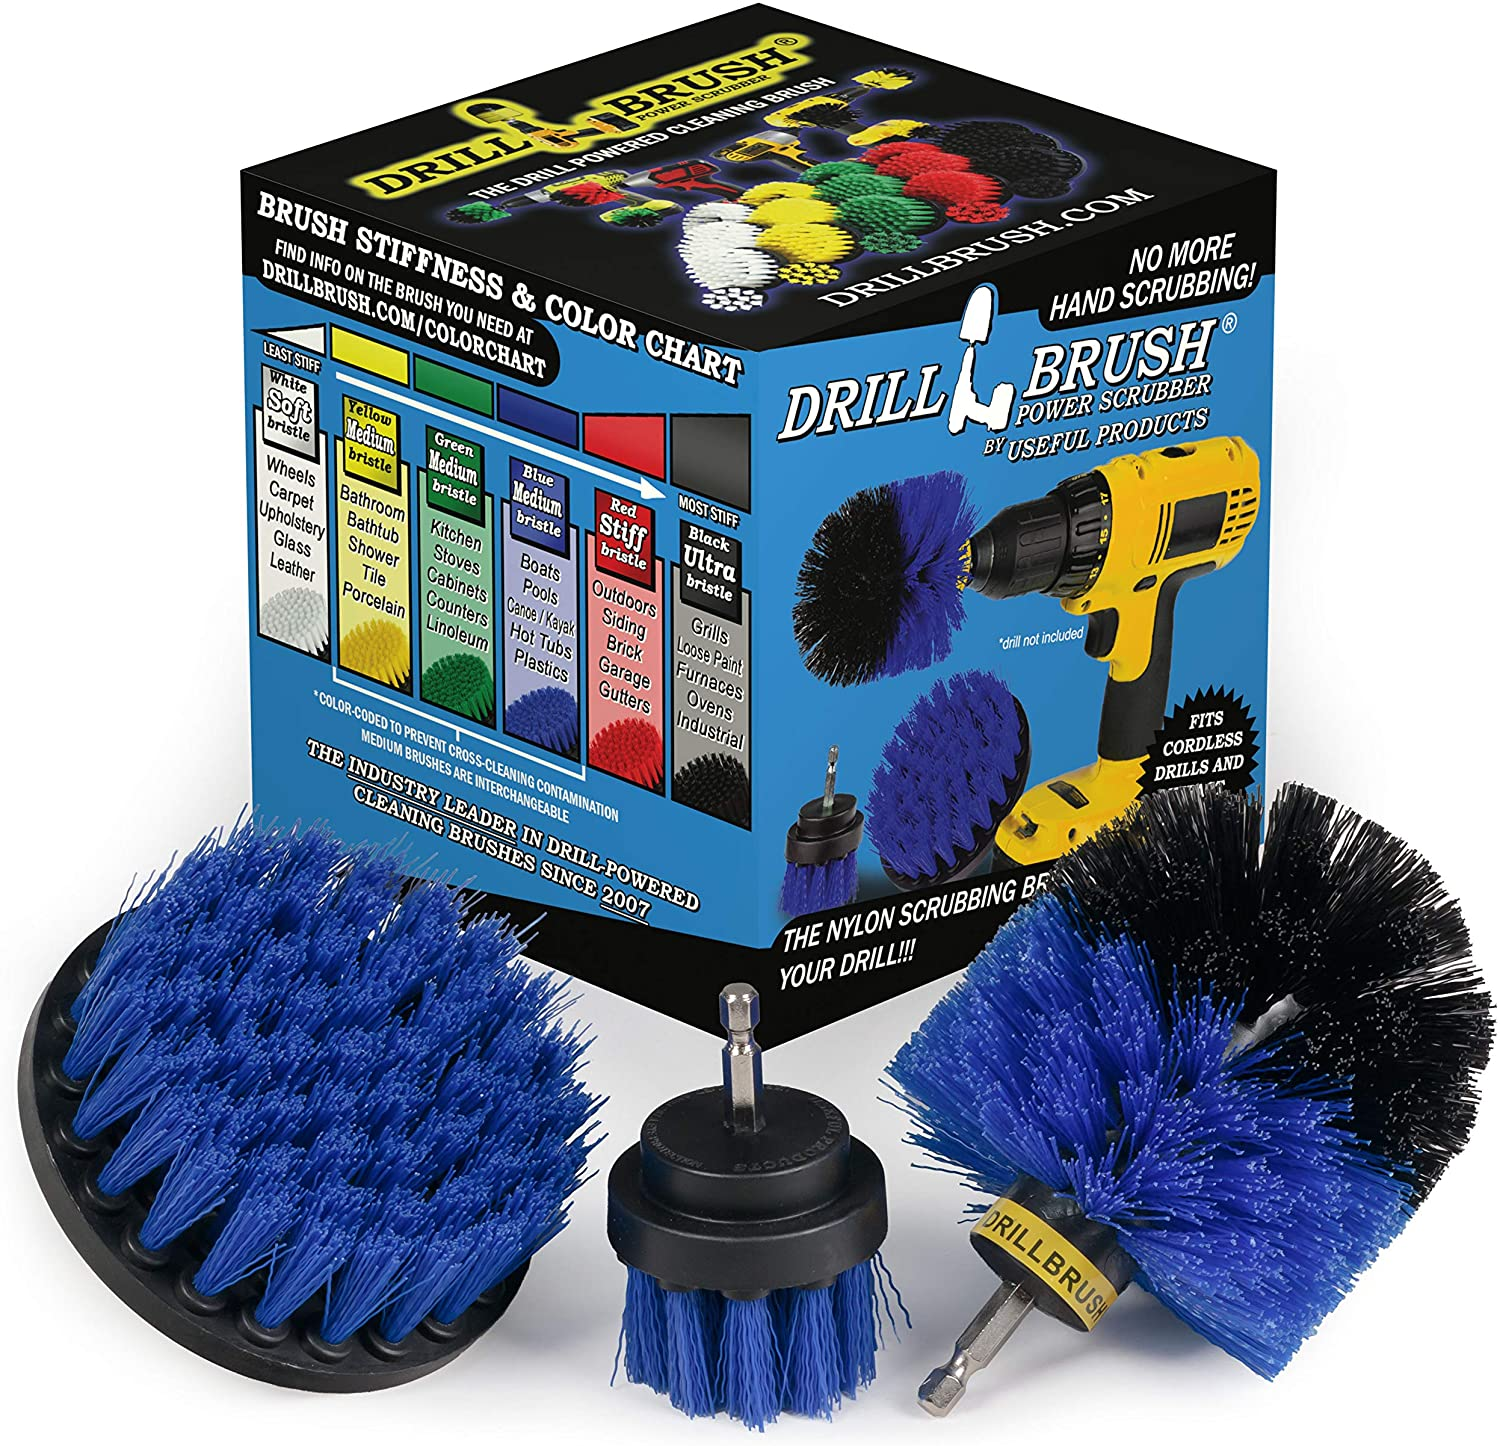 Drill Brush Power Scrubber by Useful Products Drill Brush Boat Accessories – Kayak Cleaning Kit – Boat Drill Brush Set - Marine Scrub Brush Attachment for Drill - Rotary Cleaning Brushes for Boats: Kitchen & Dining